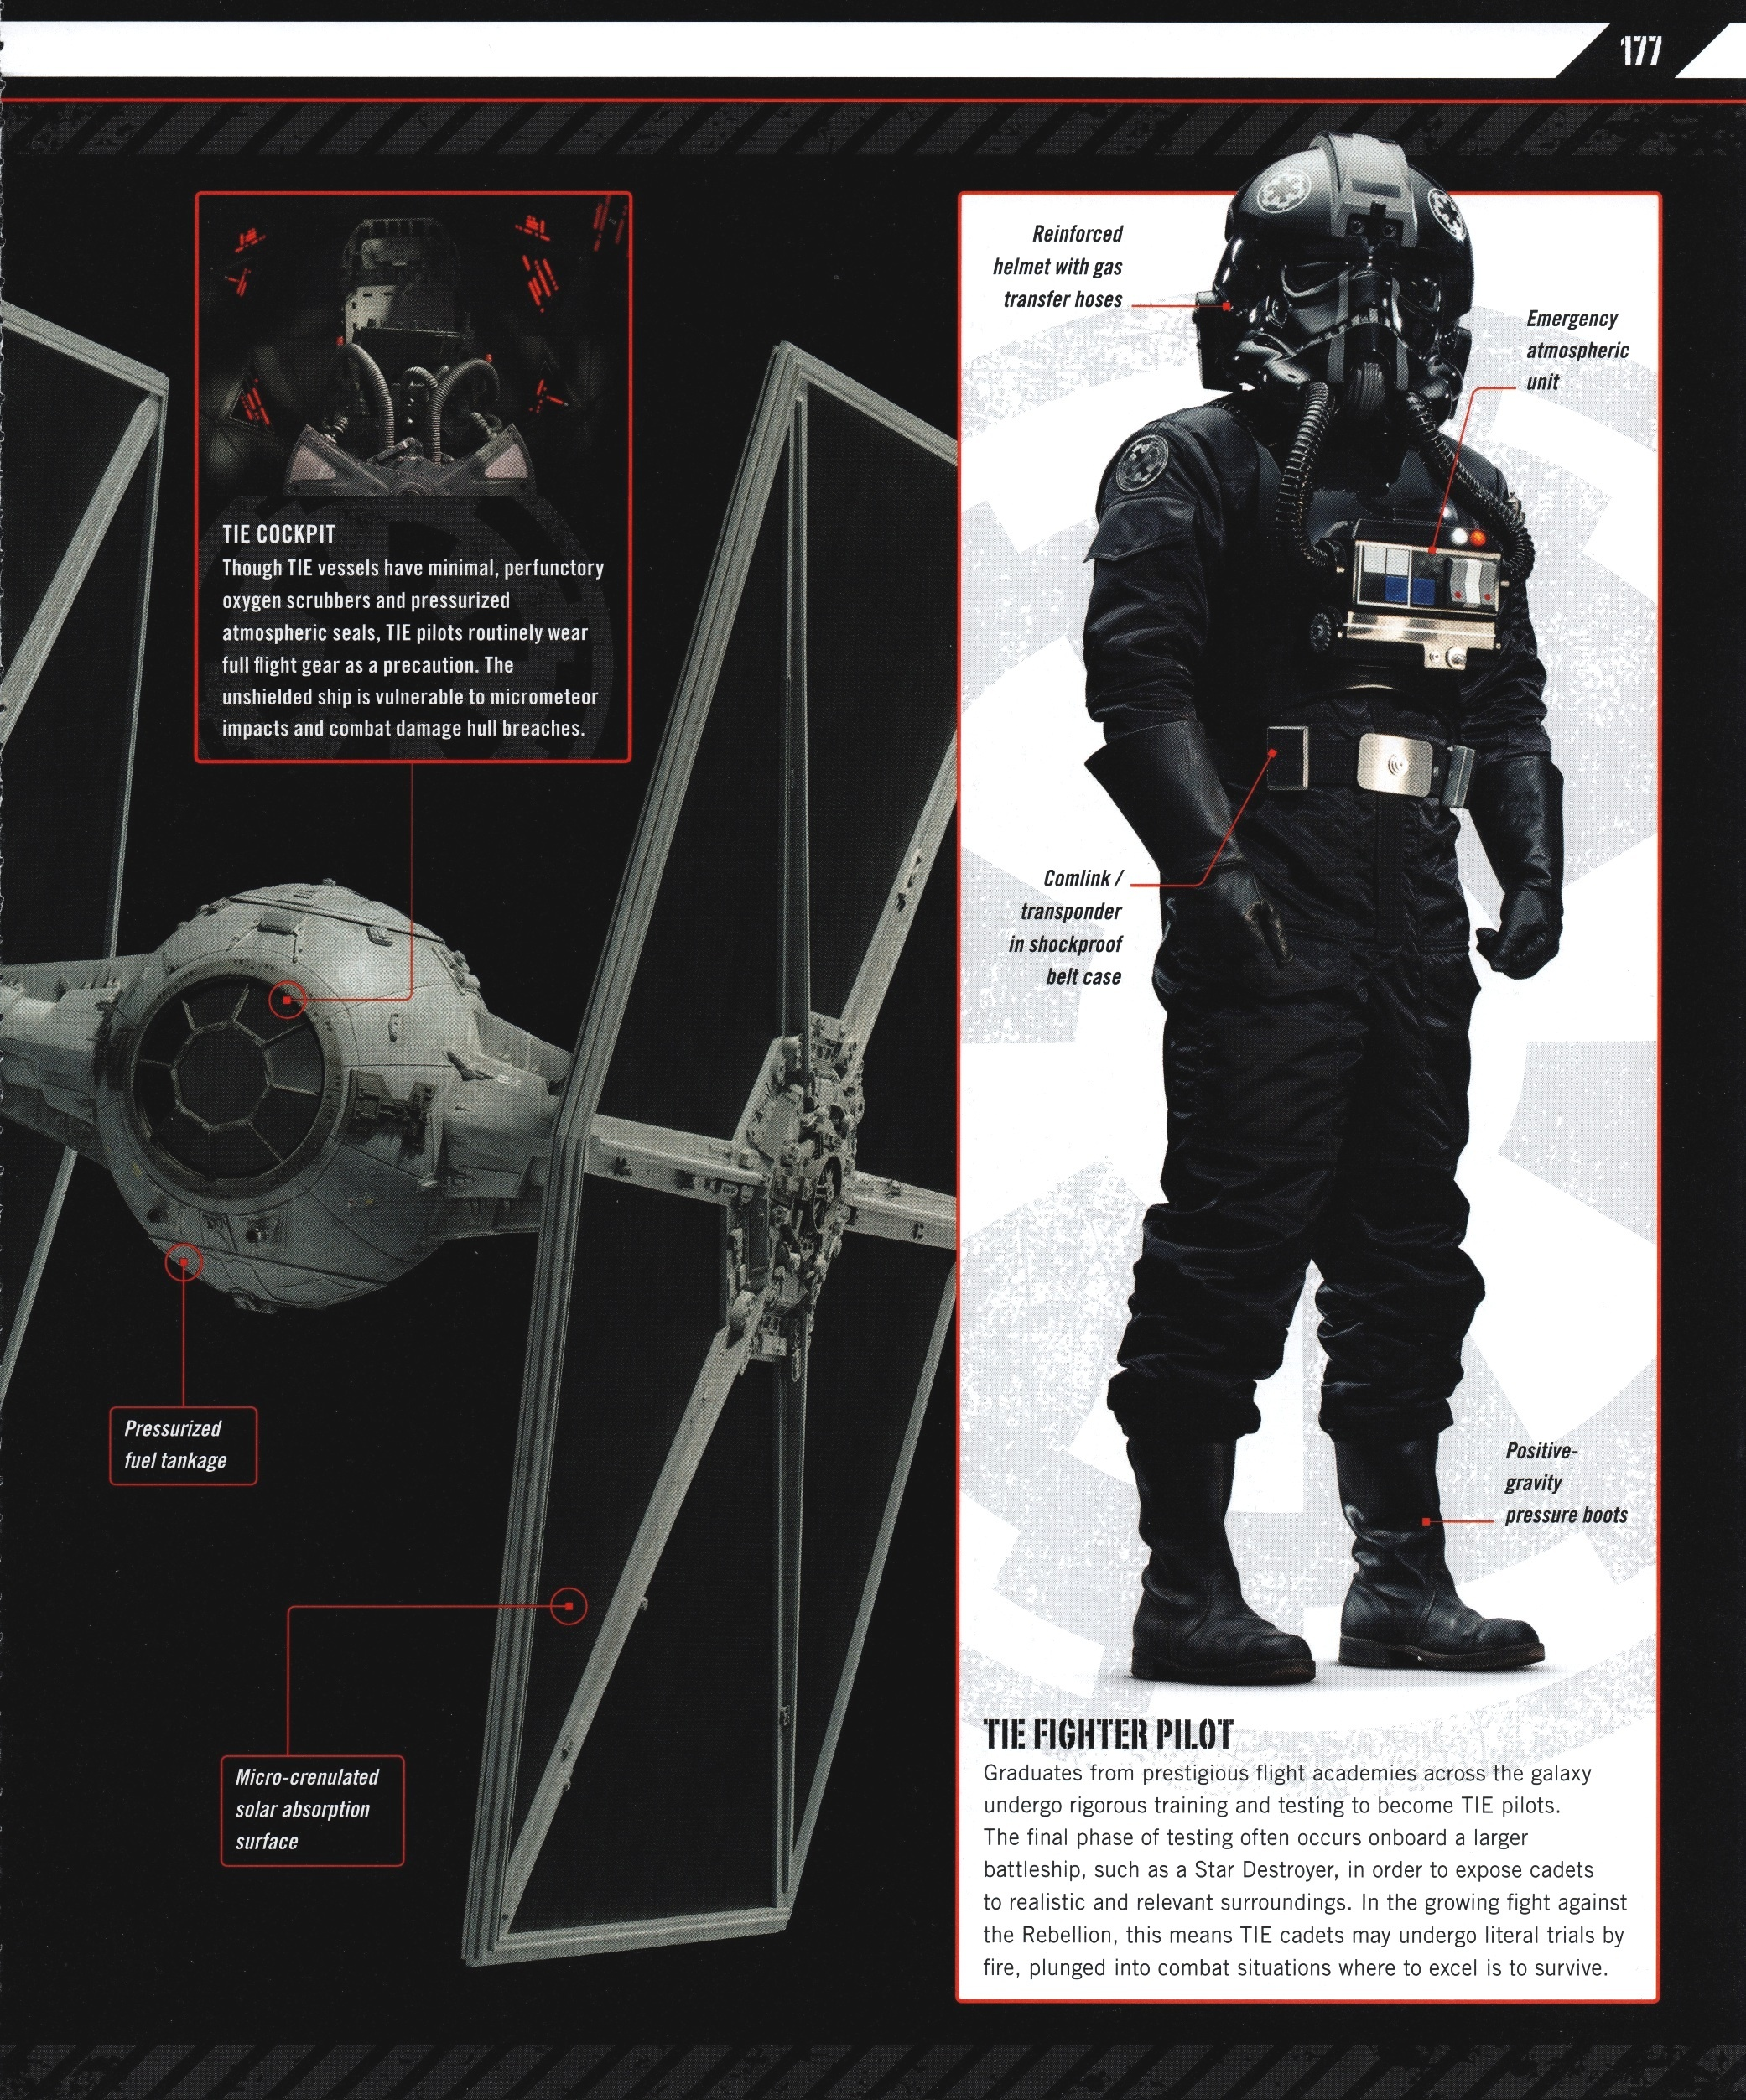 Rogue One Ultimate Visual Guide (b0bafett_Empire) p177